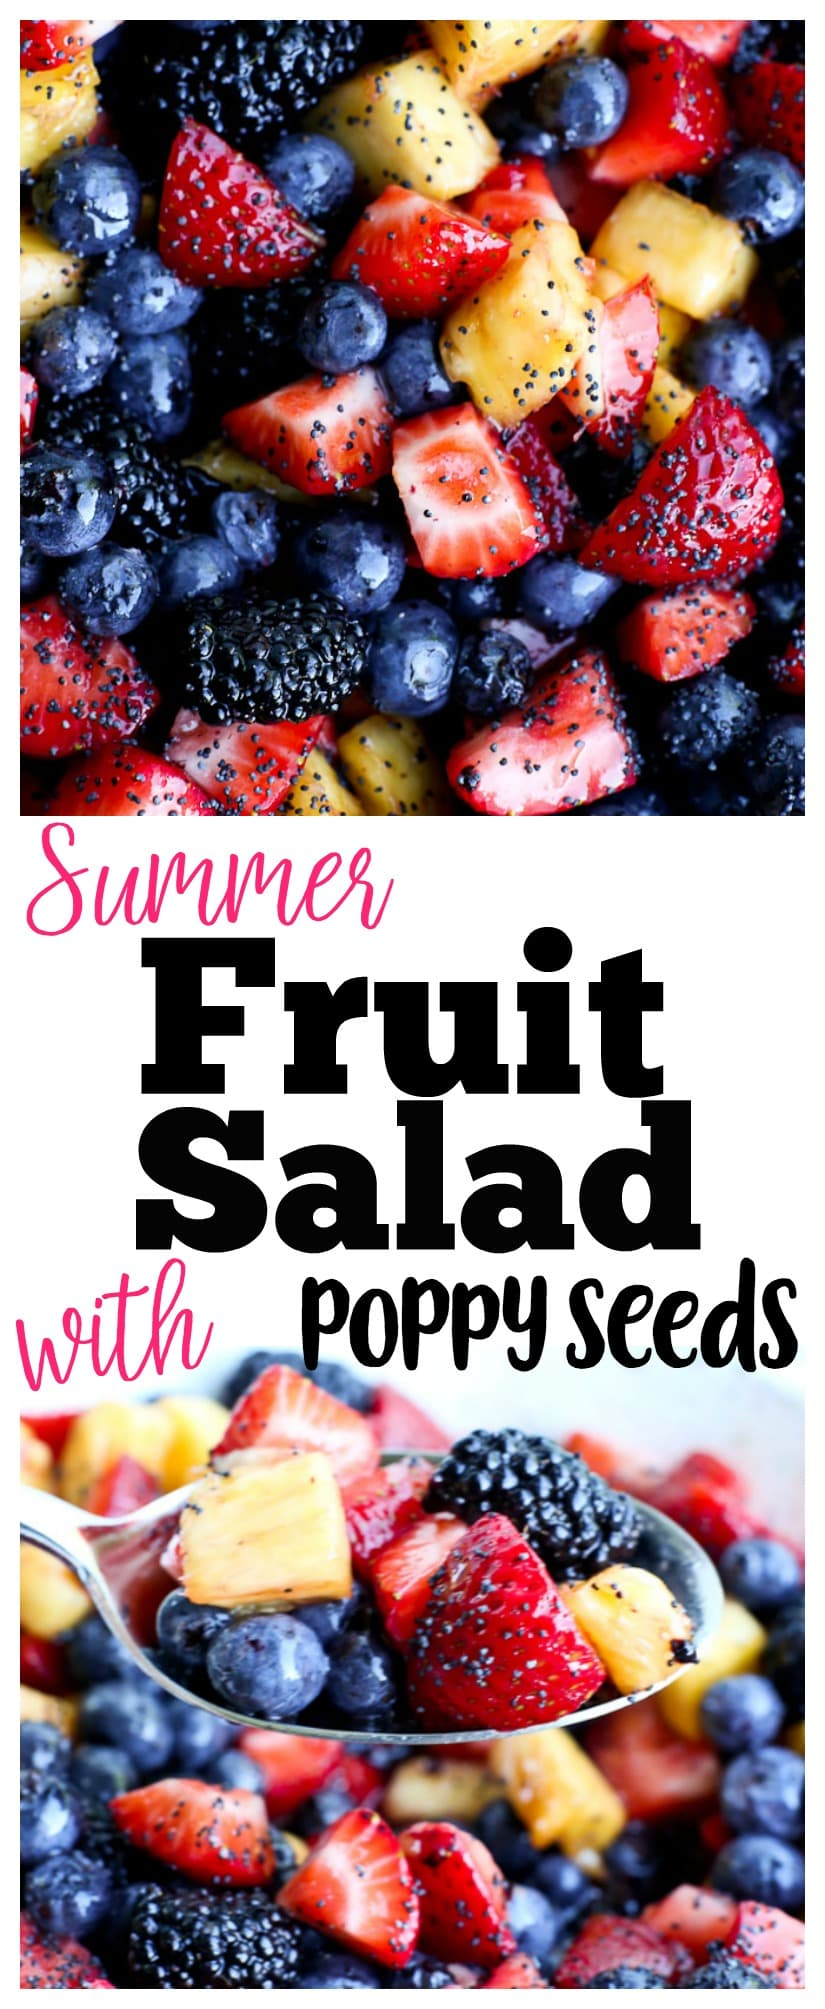 summer fruit salad recipe | poppy seeds | honey lime dressing | gluten-free | healthy recipe | pot-luck recipe